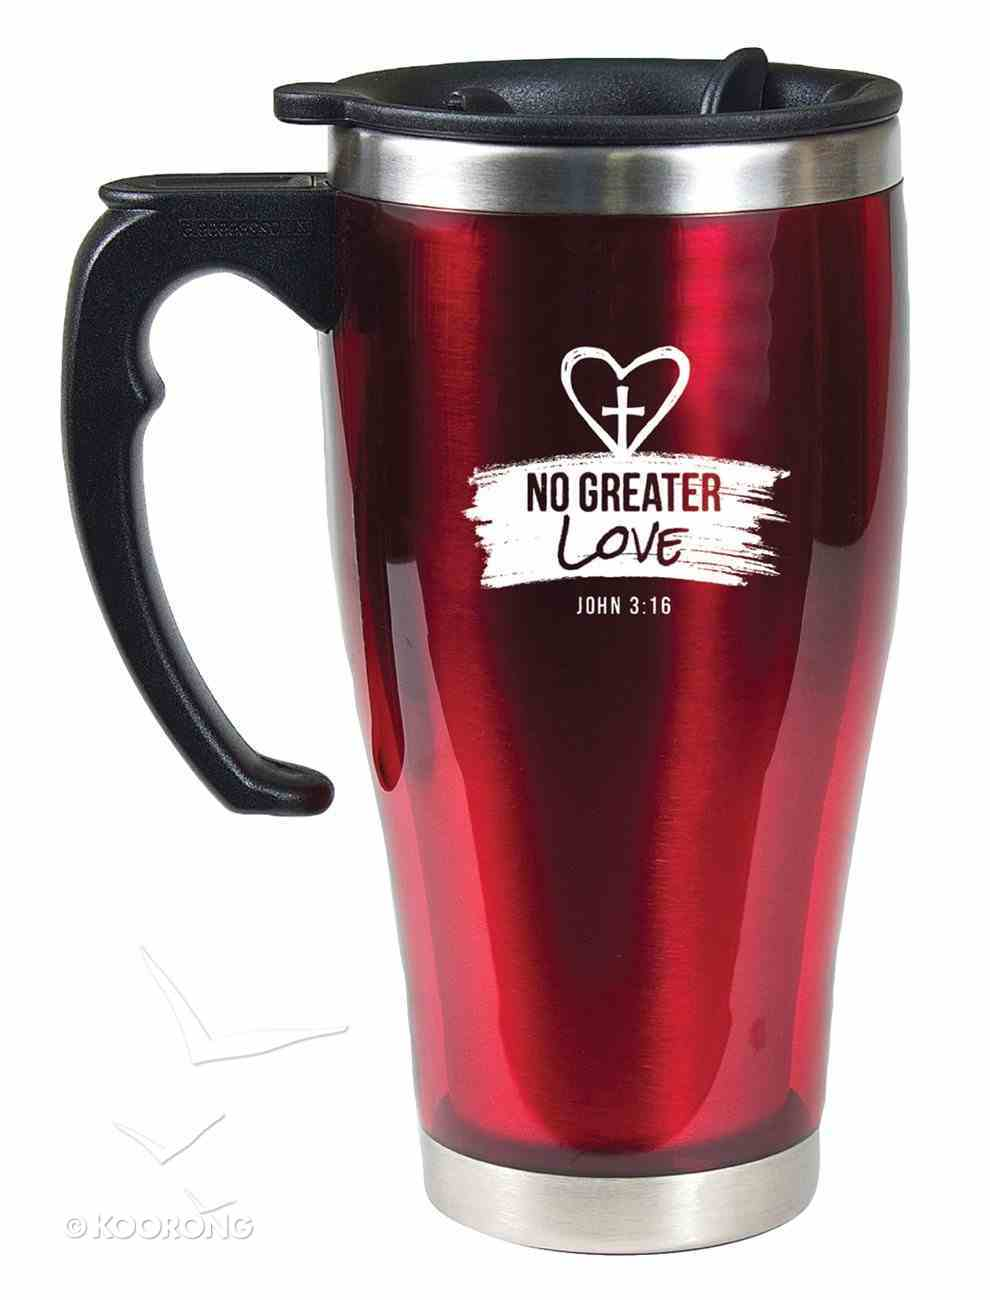 Stainless Steel Travel Mug With Handle: No Greater Love (John 3:16) Homeware